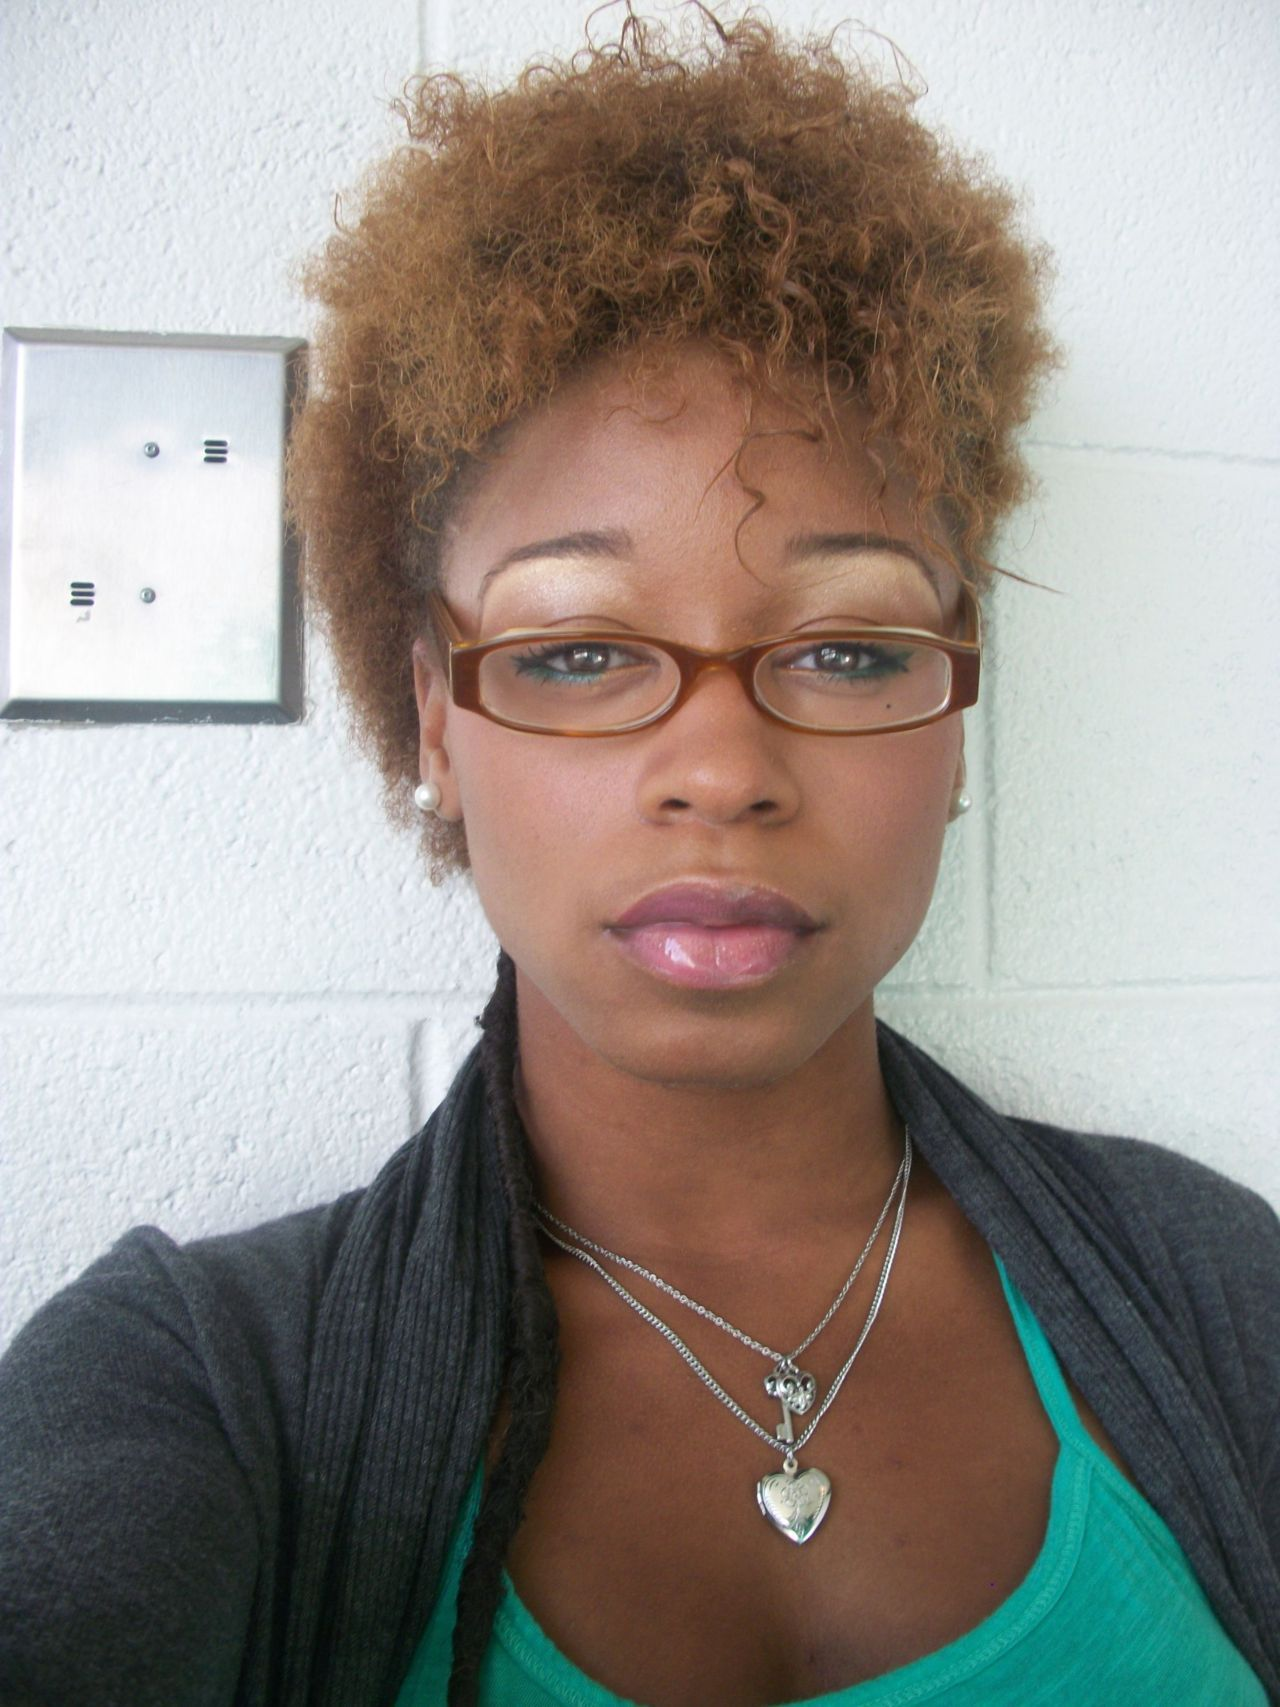 18-15n-77-30w:  blackgirlsrpretty2:  Me when I 1st went natural  agelessambition.tumblr.com  http://18-15n-77-30w.tumblr.com/